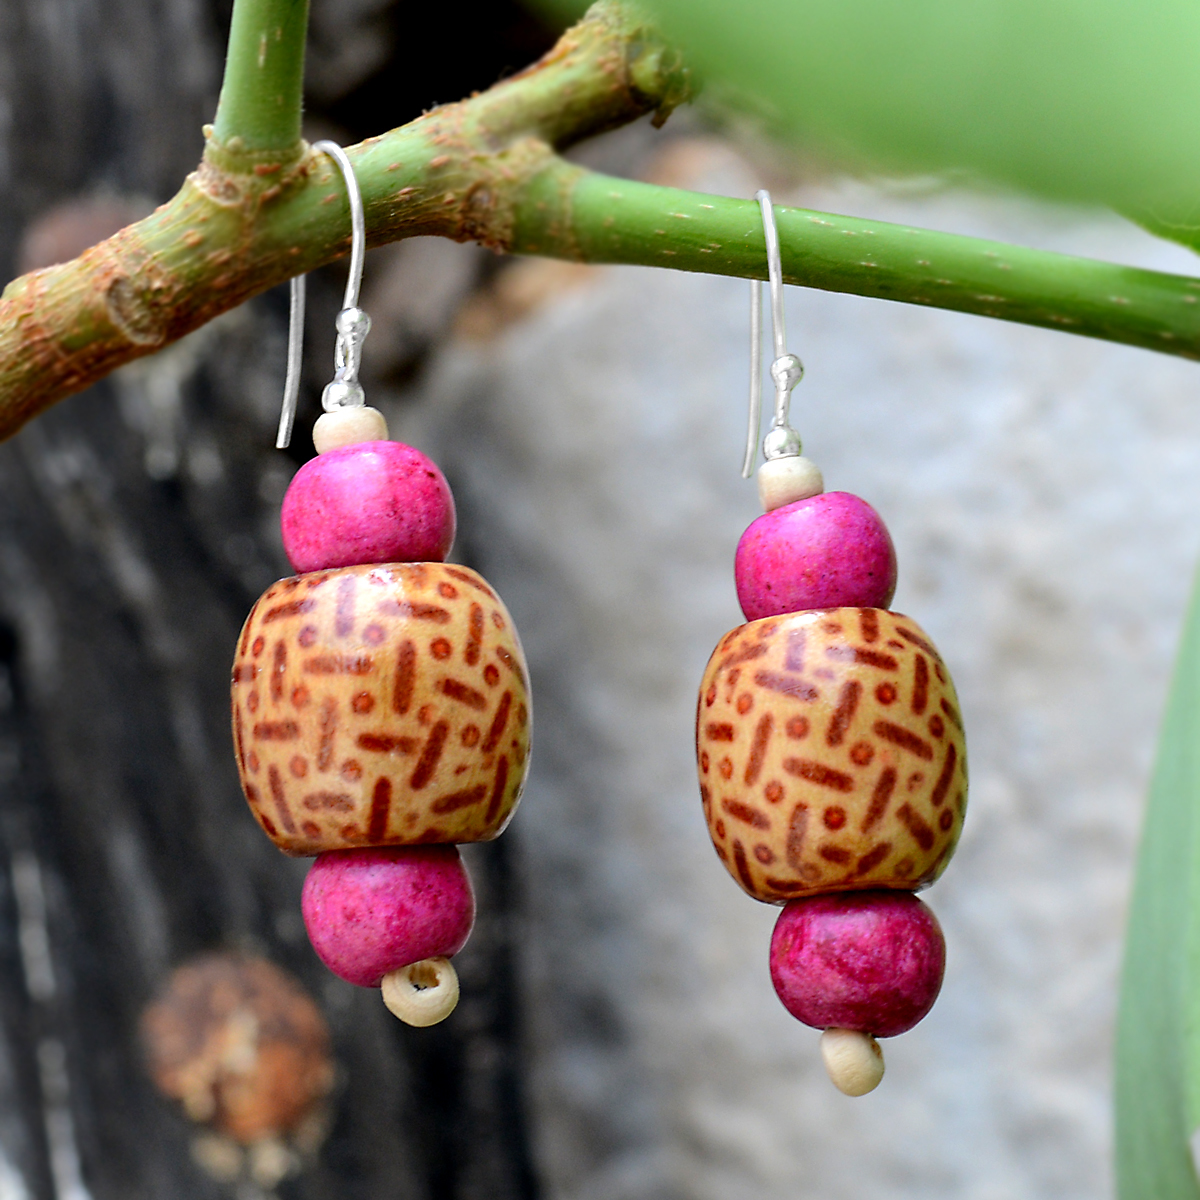 Handmade Jewelry Manufacturer 925 Sterling Silver, Brown & Pink Painted wooden Dangle Earring Jaipur Rajasthan India